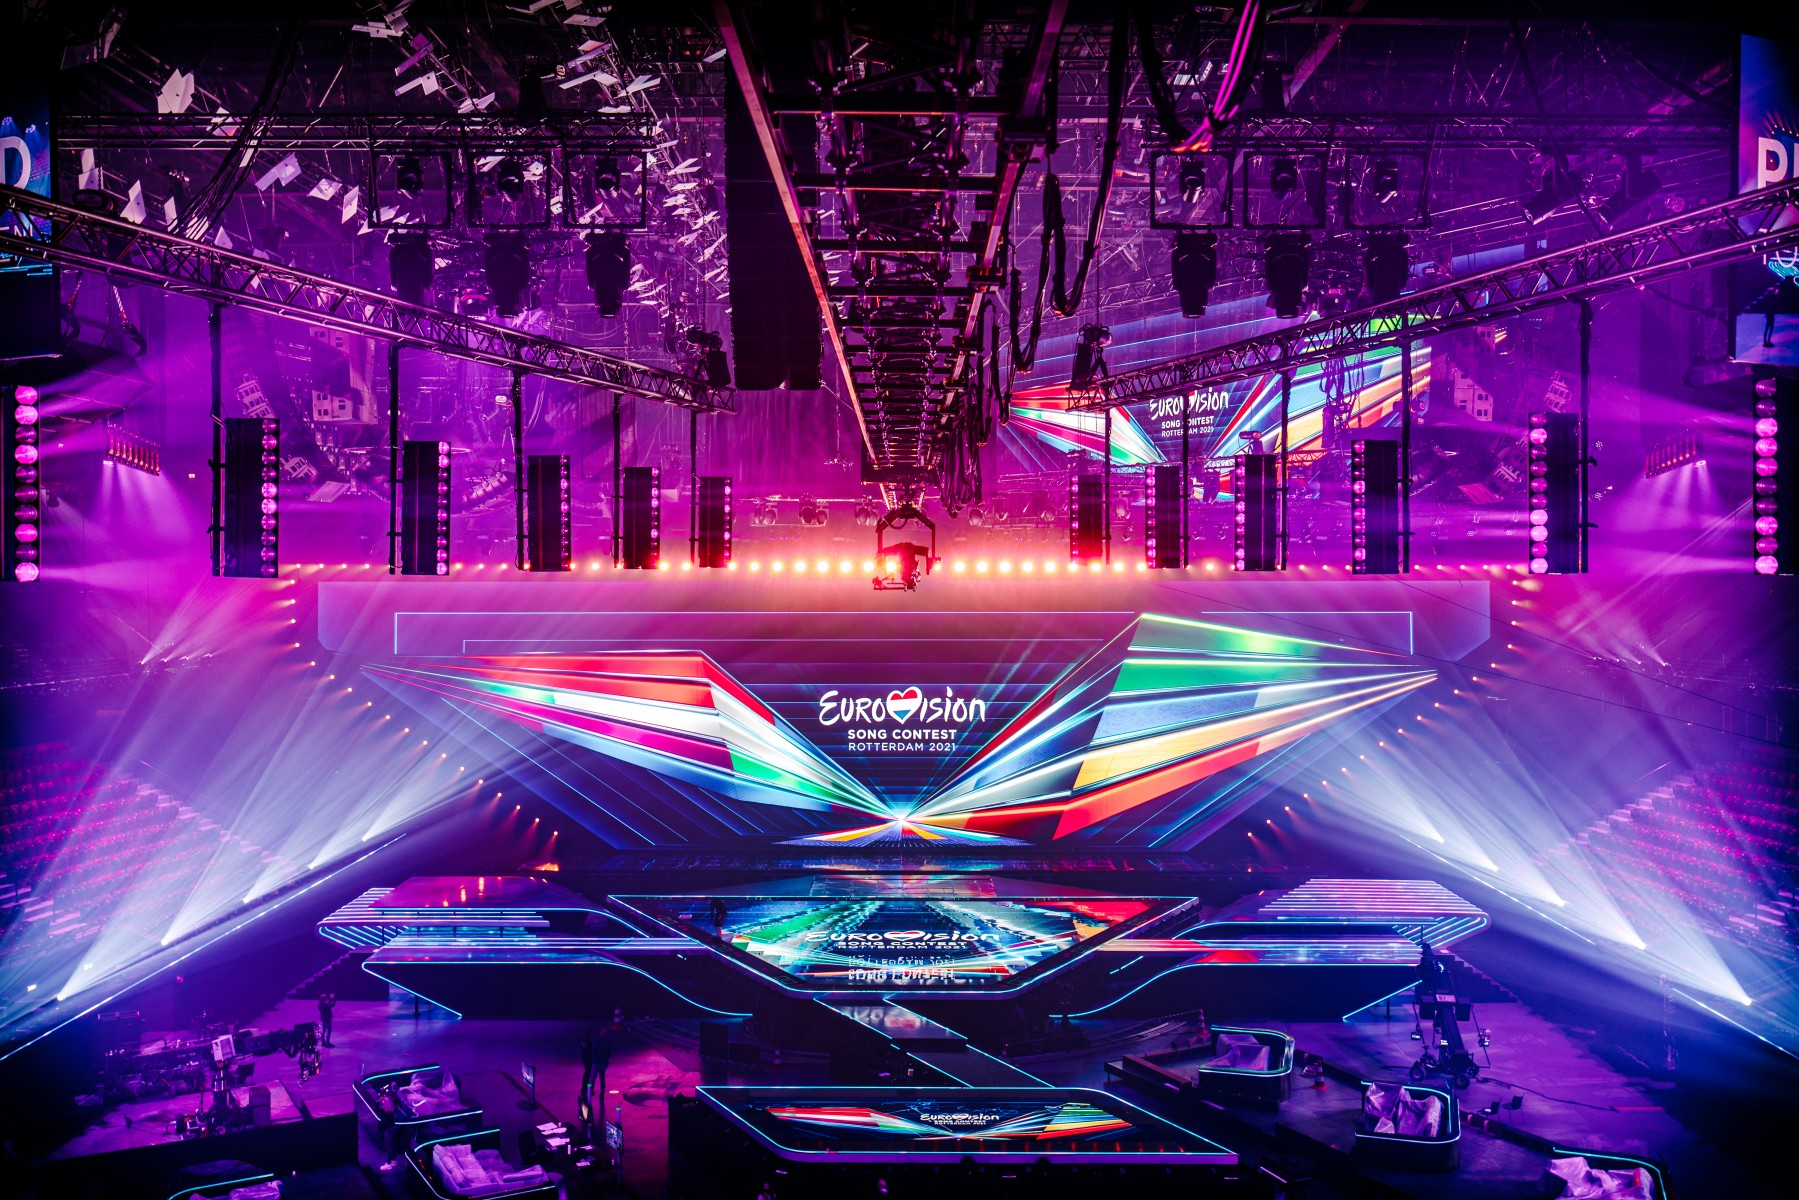 Eurovision 2021: Today 1st Semi Final Jury Show to be held in Rotterdam Ahoy